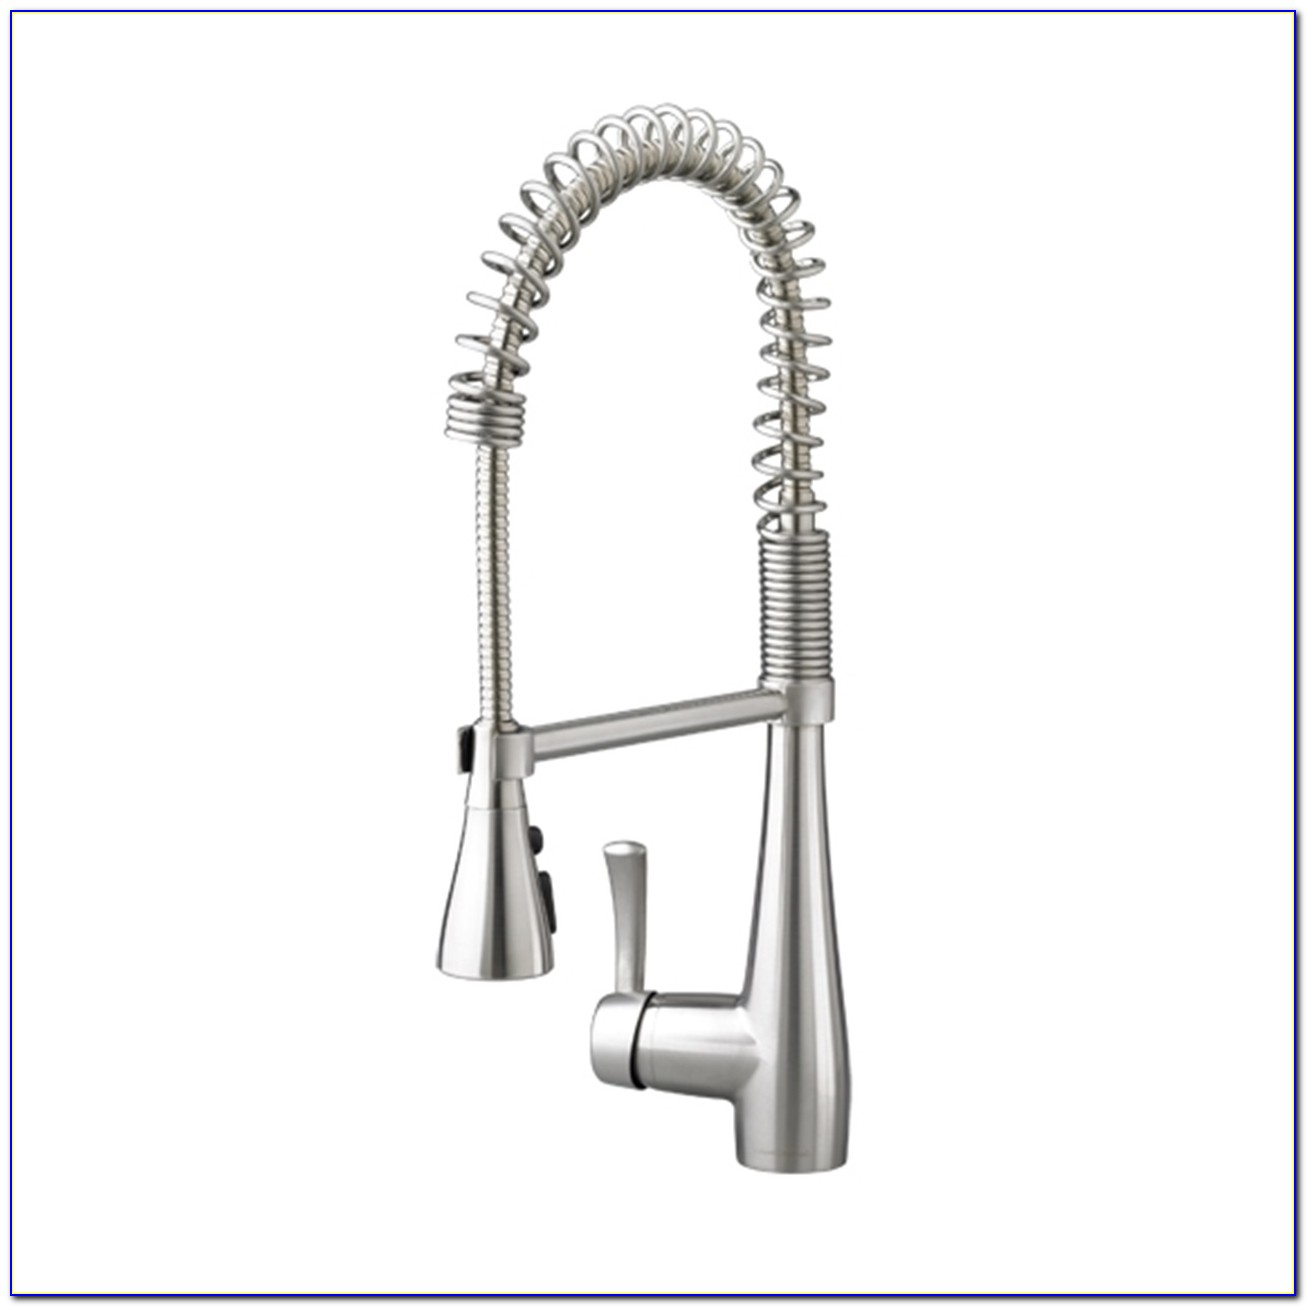 Semi Professional Kitchen Faucets